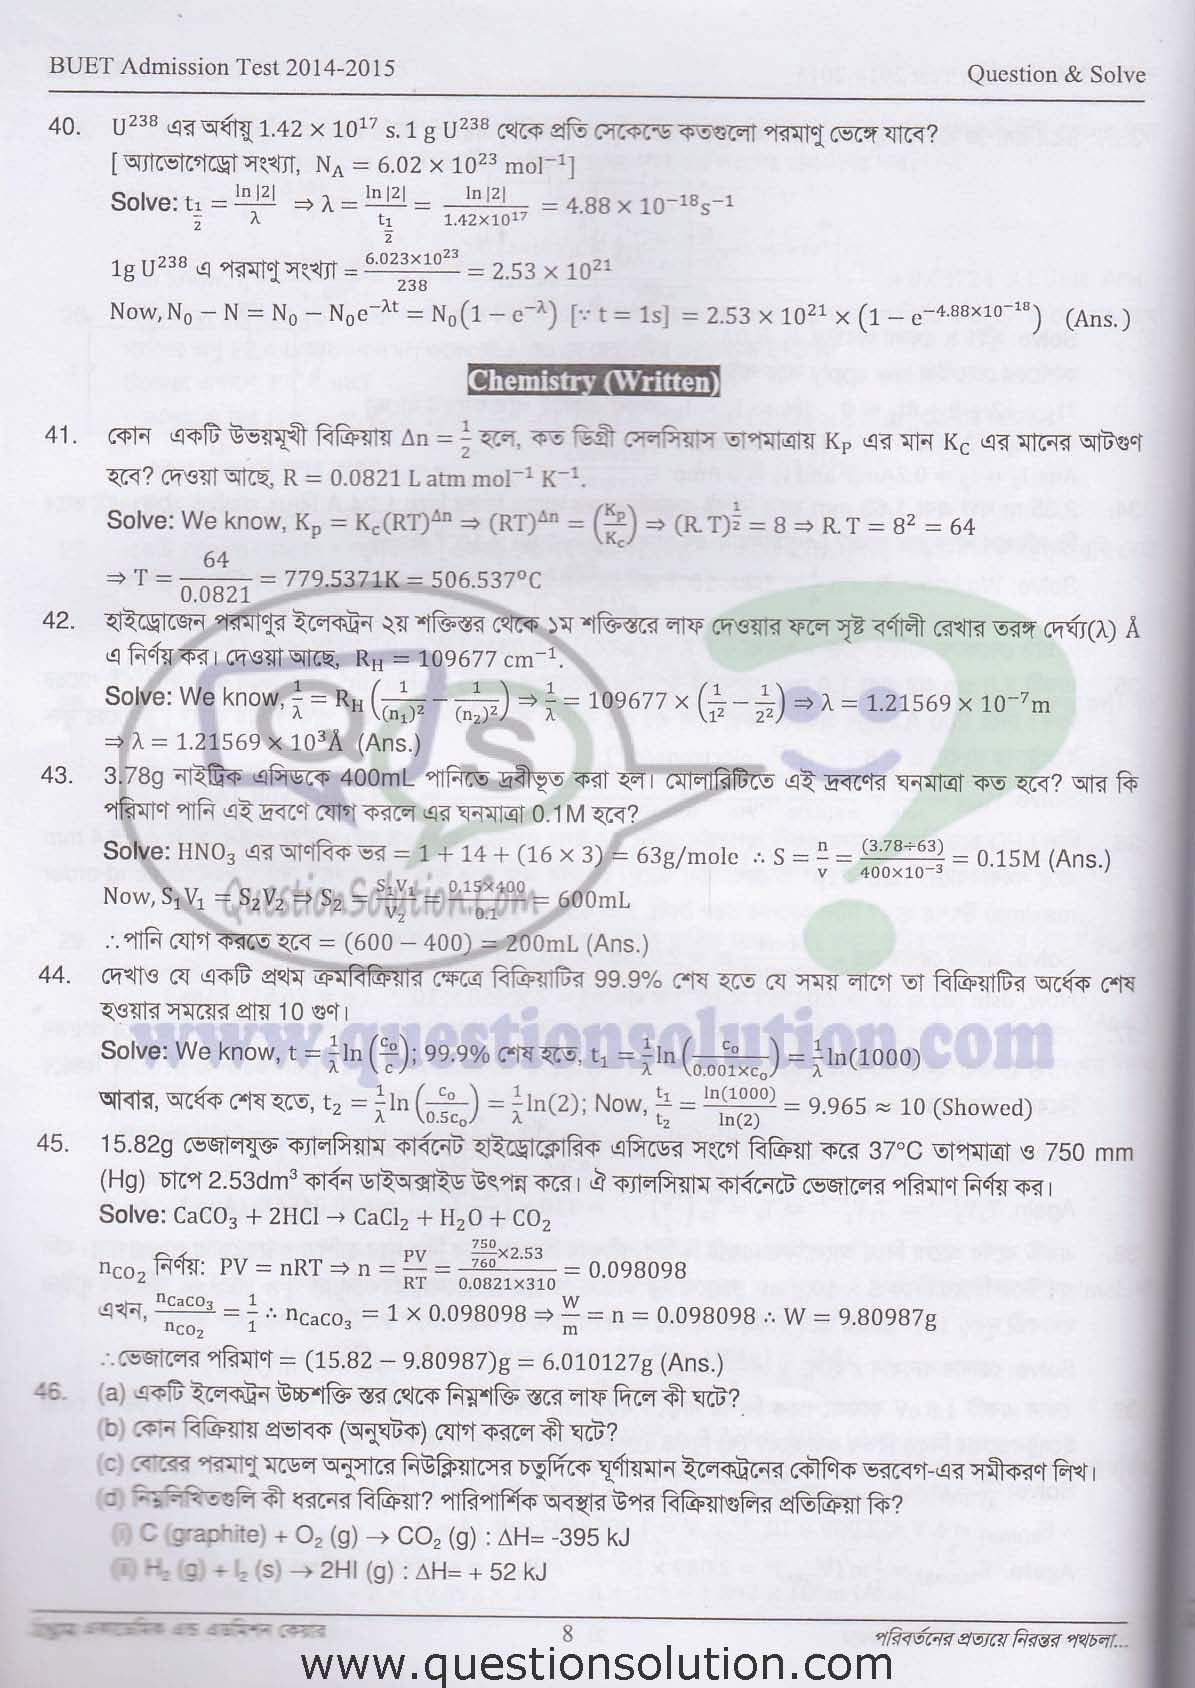 Pin on exam questions